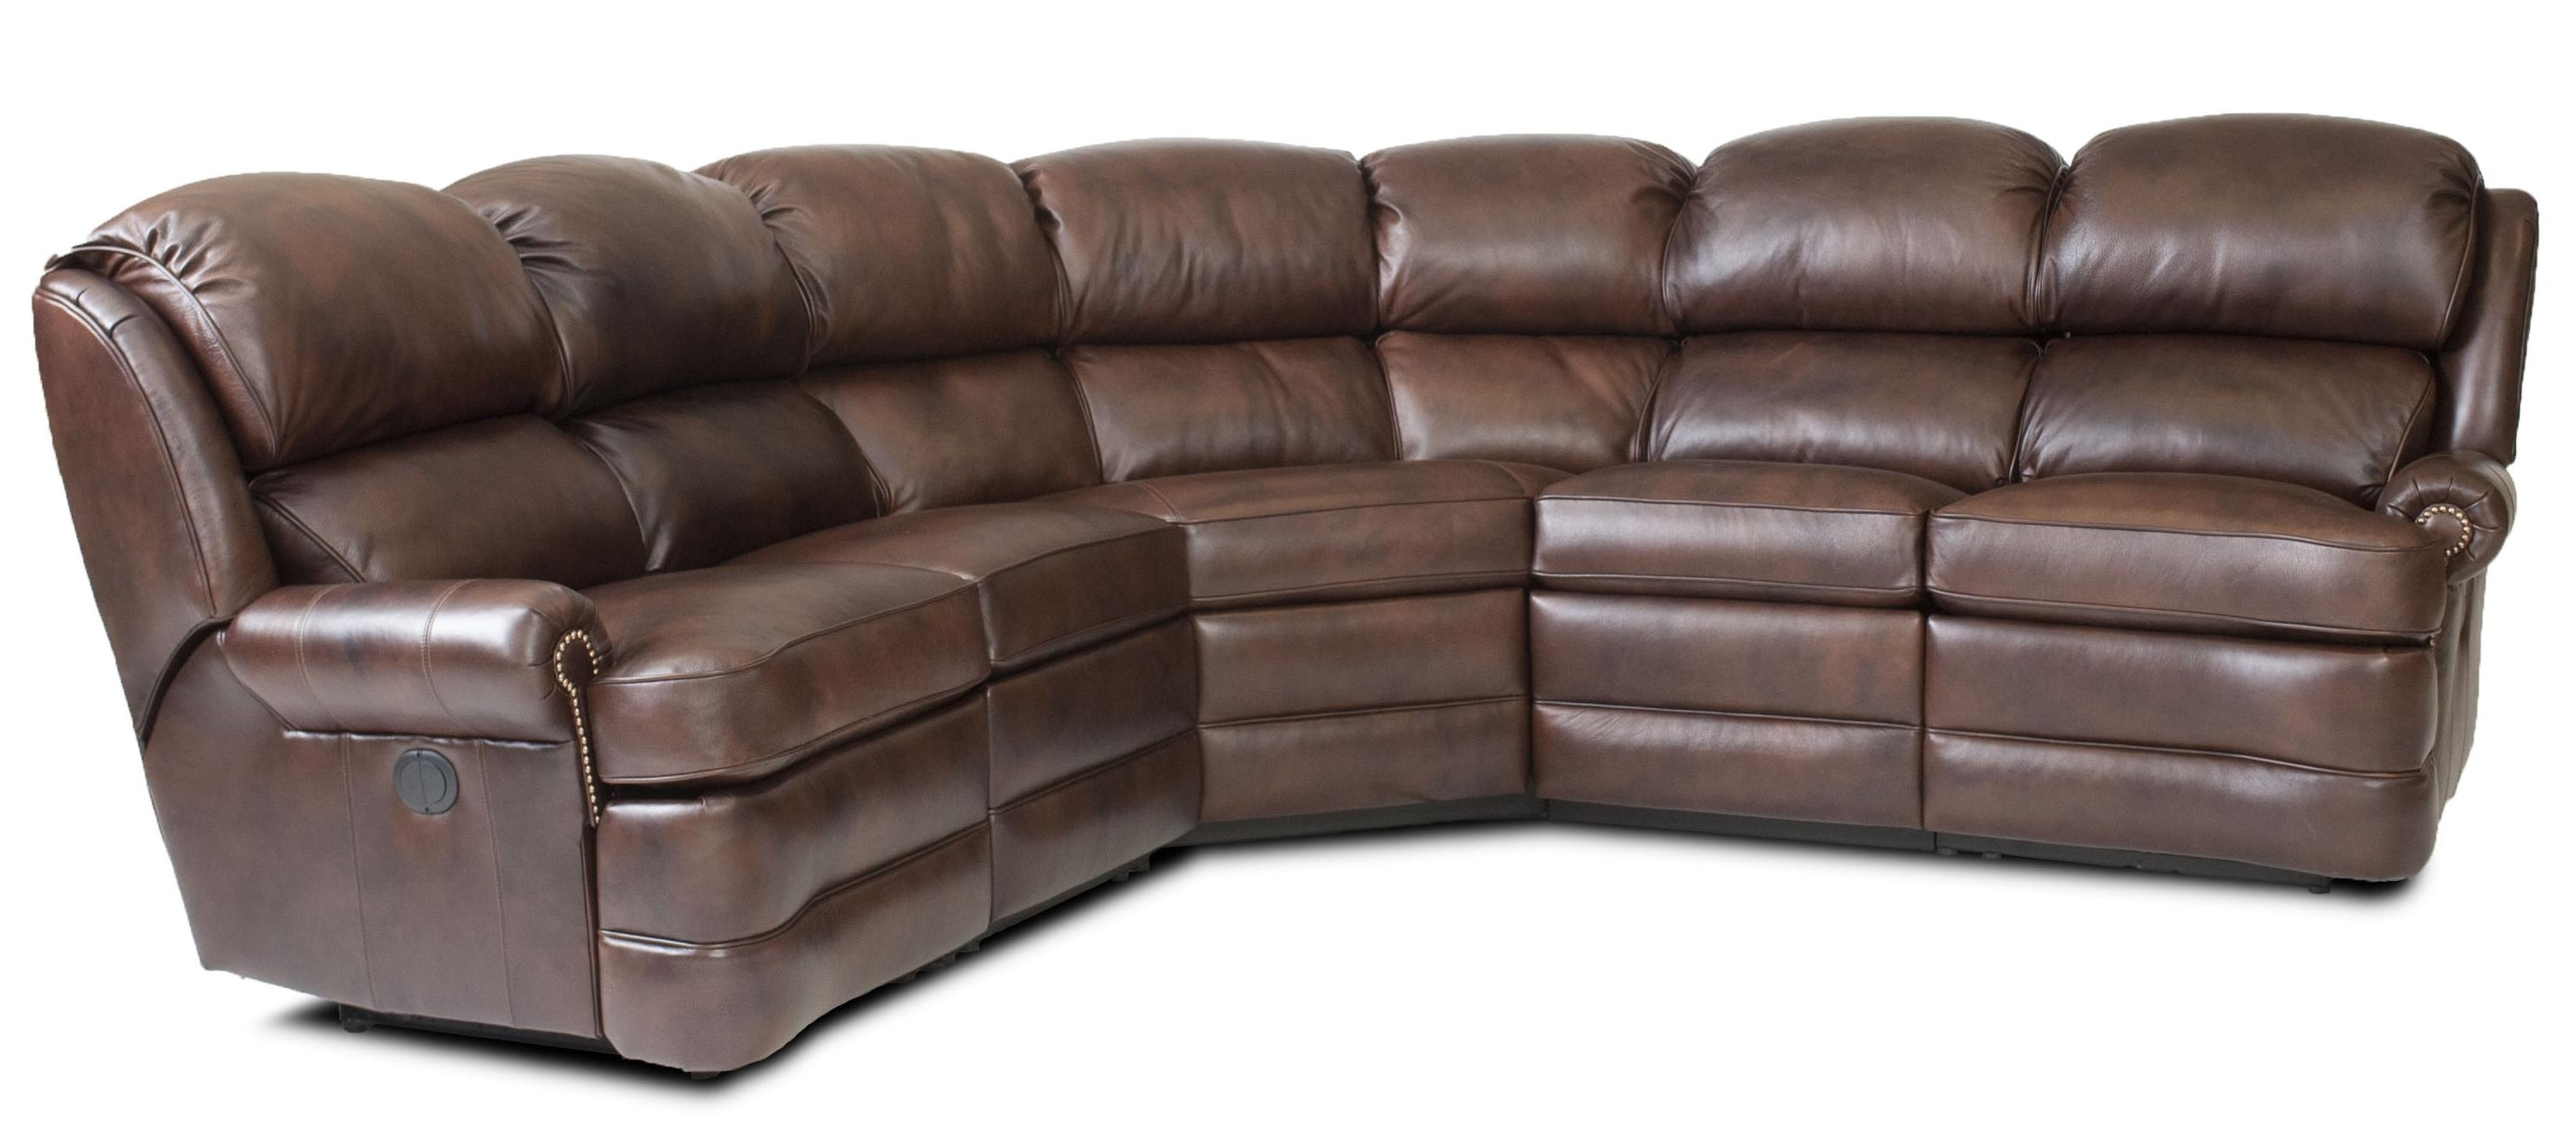 Most Current Overstuffed Sofas And Chairs Inside Transitional 5 Piece Reclining Sectional Sofa With Small Rolled (View 13 of 15)